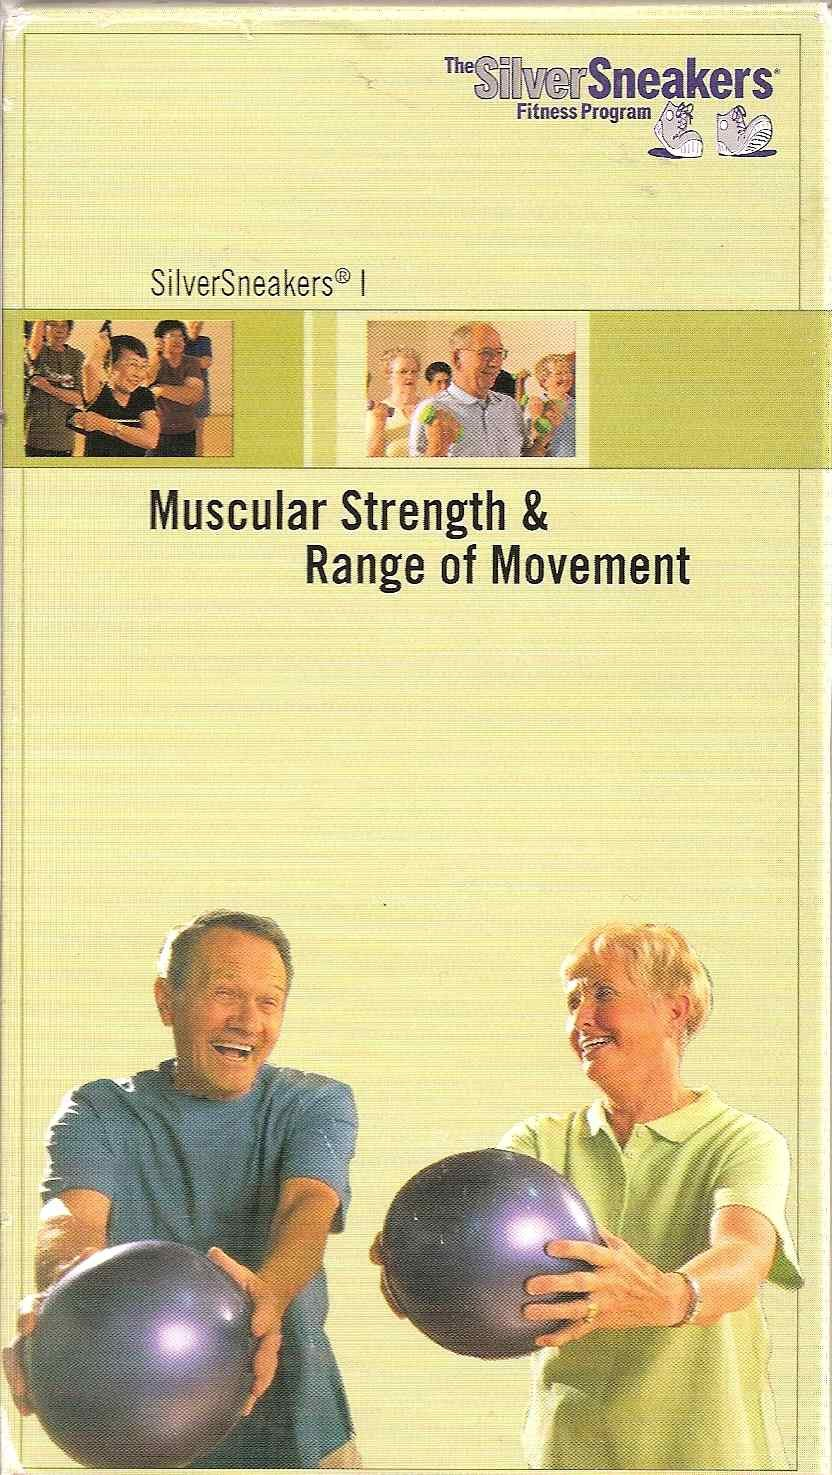 Amazon.com: SilverSneakers: Muscular Strength & Range of Movement ...